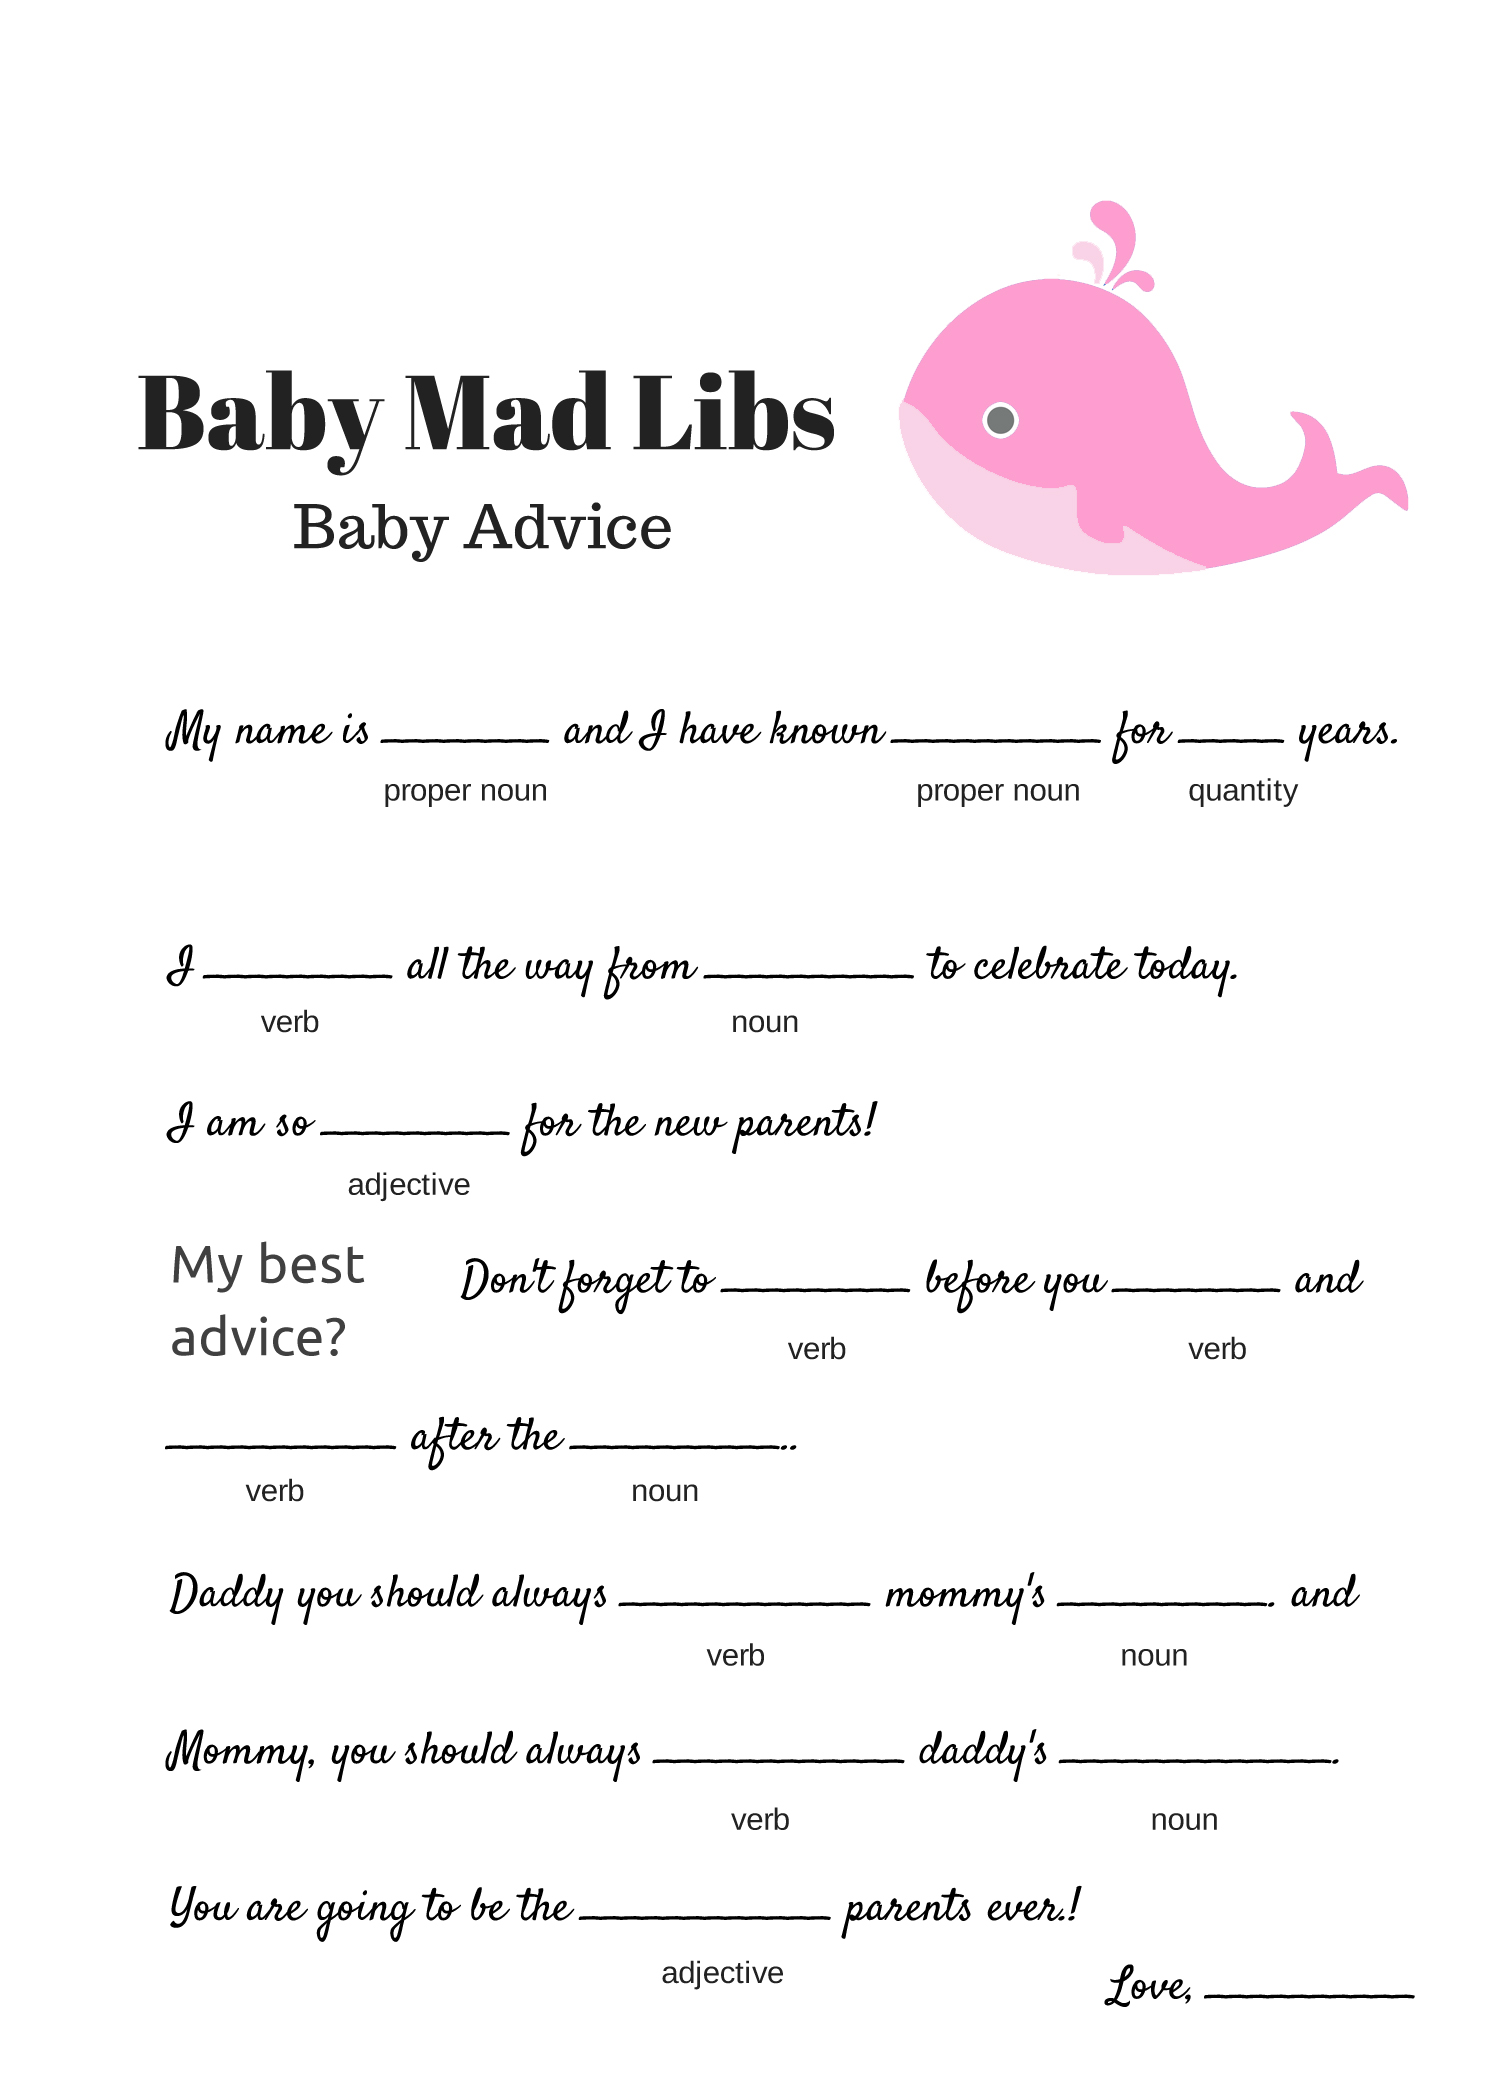 Free Baby Mad Libs Game